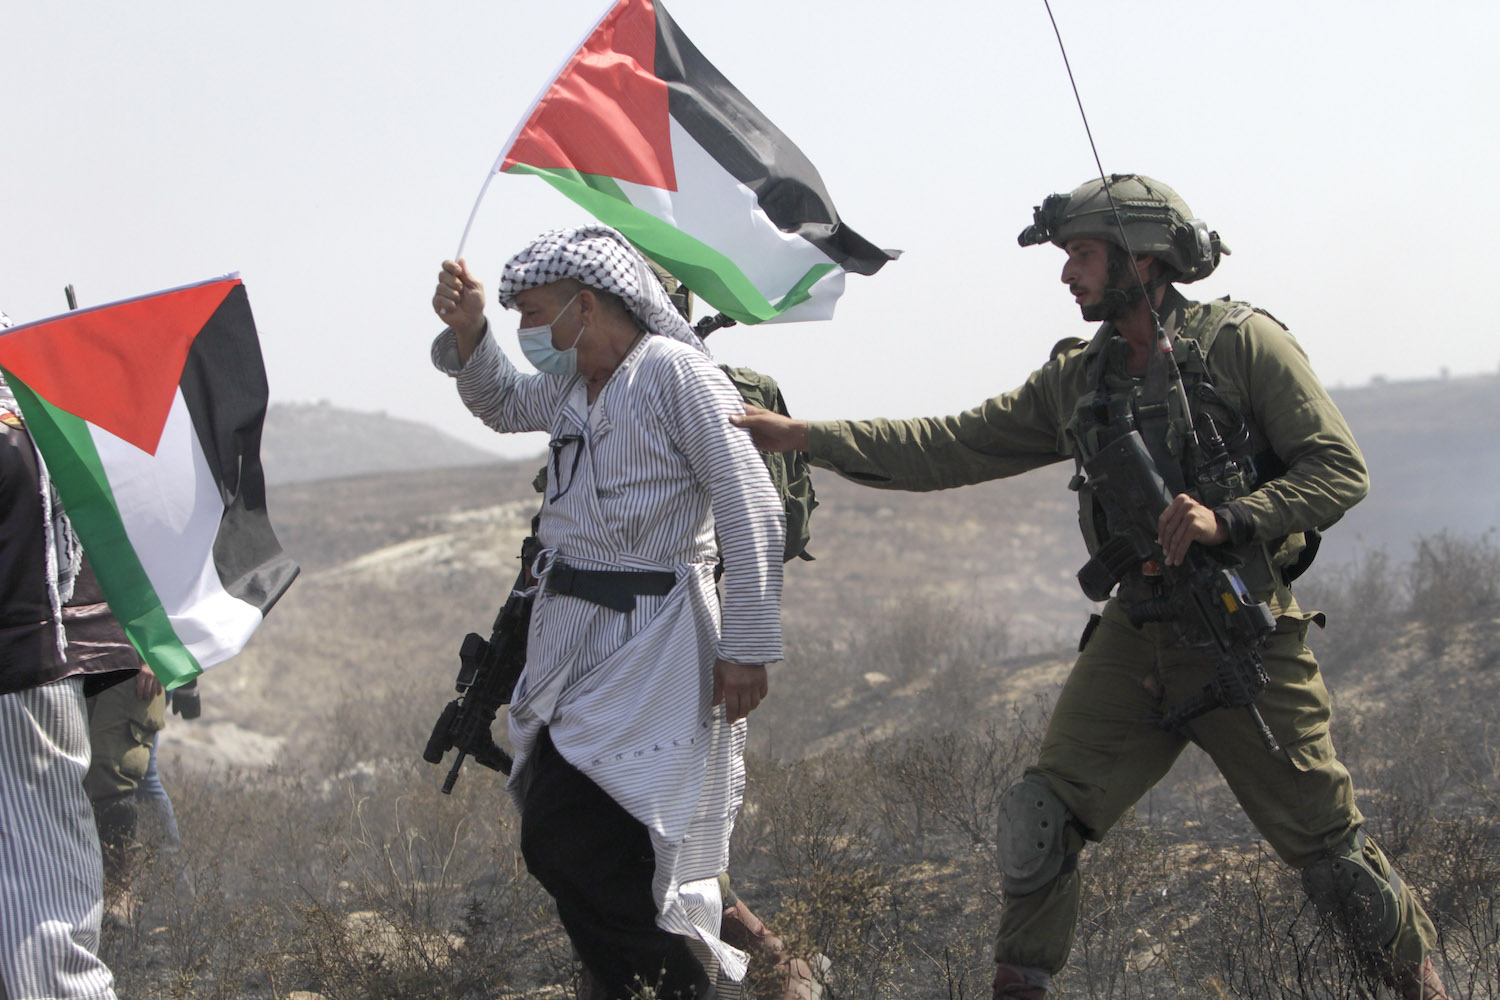 Israeli soldiers seen during a protest by Palestinians against settlers in the West Bank village of Asira al-Qibliya, near the settlement of Yitzhar, September 18, 2020. (Nasser Ishtayeh/Flash90)